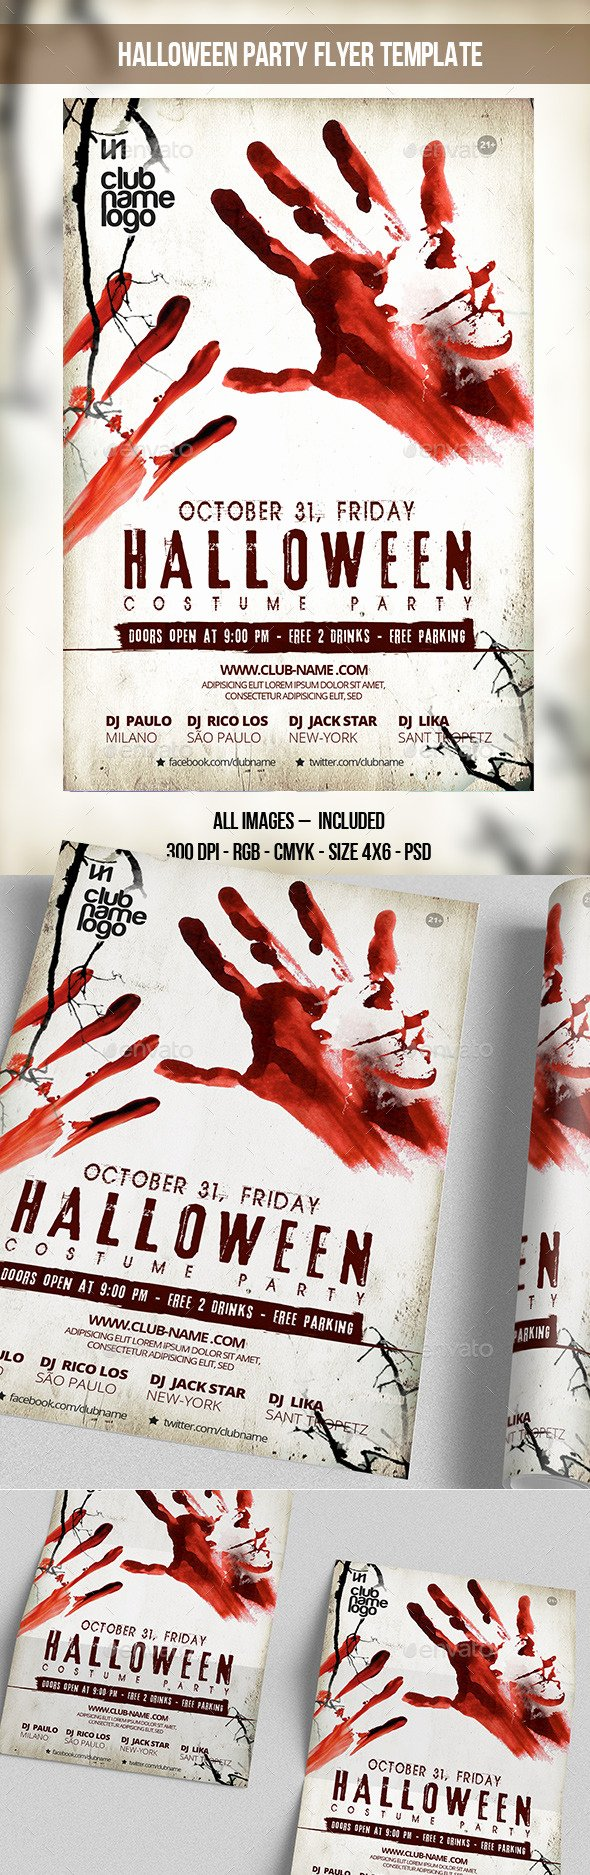 Halloween Party Flyer Template Beautiful Halloween Party Flyer Template